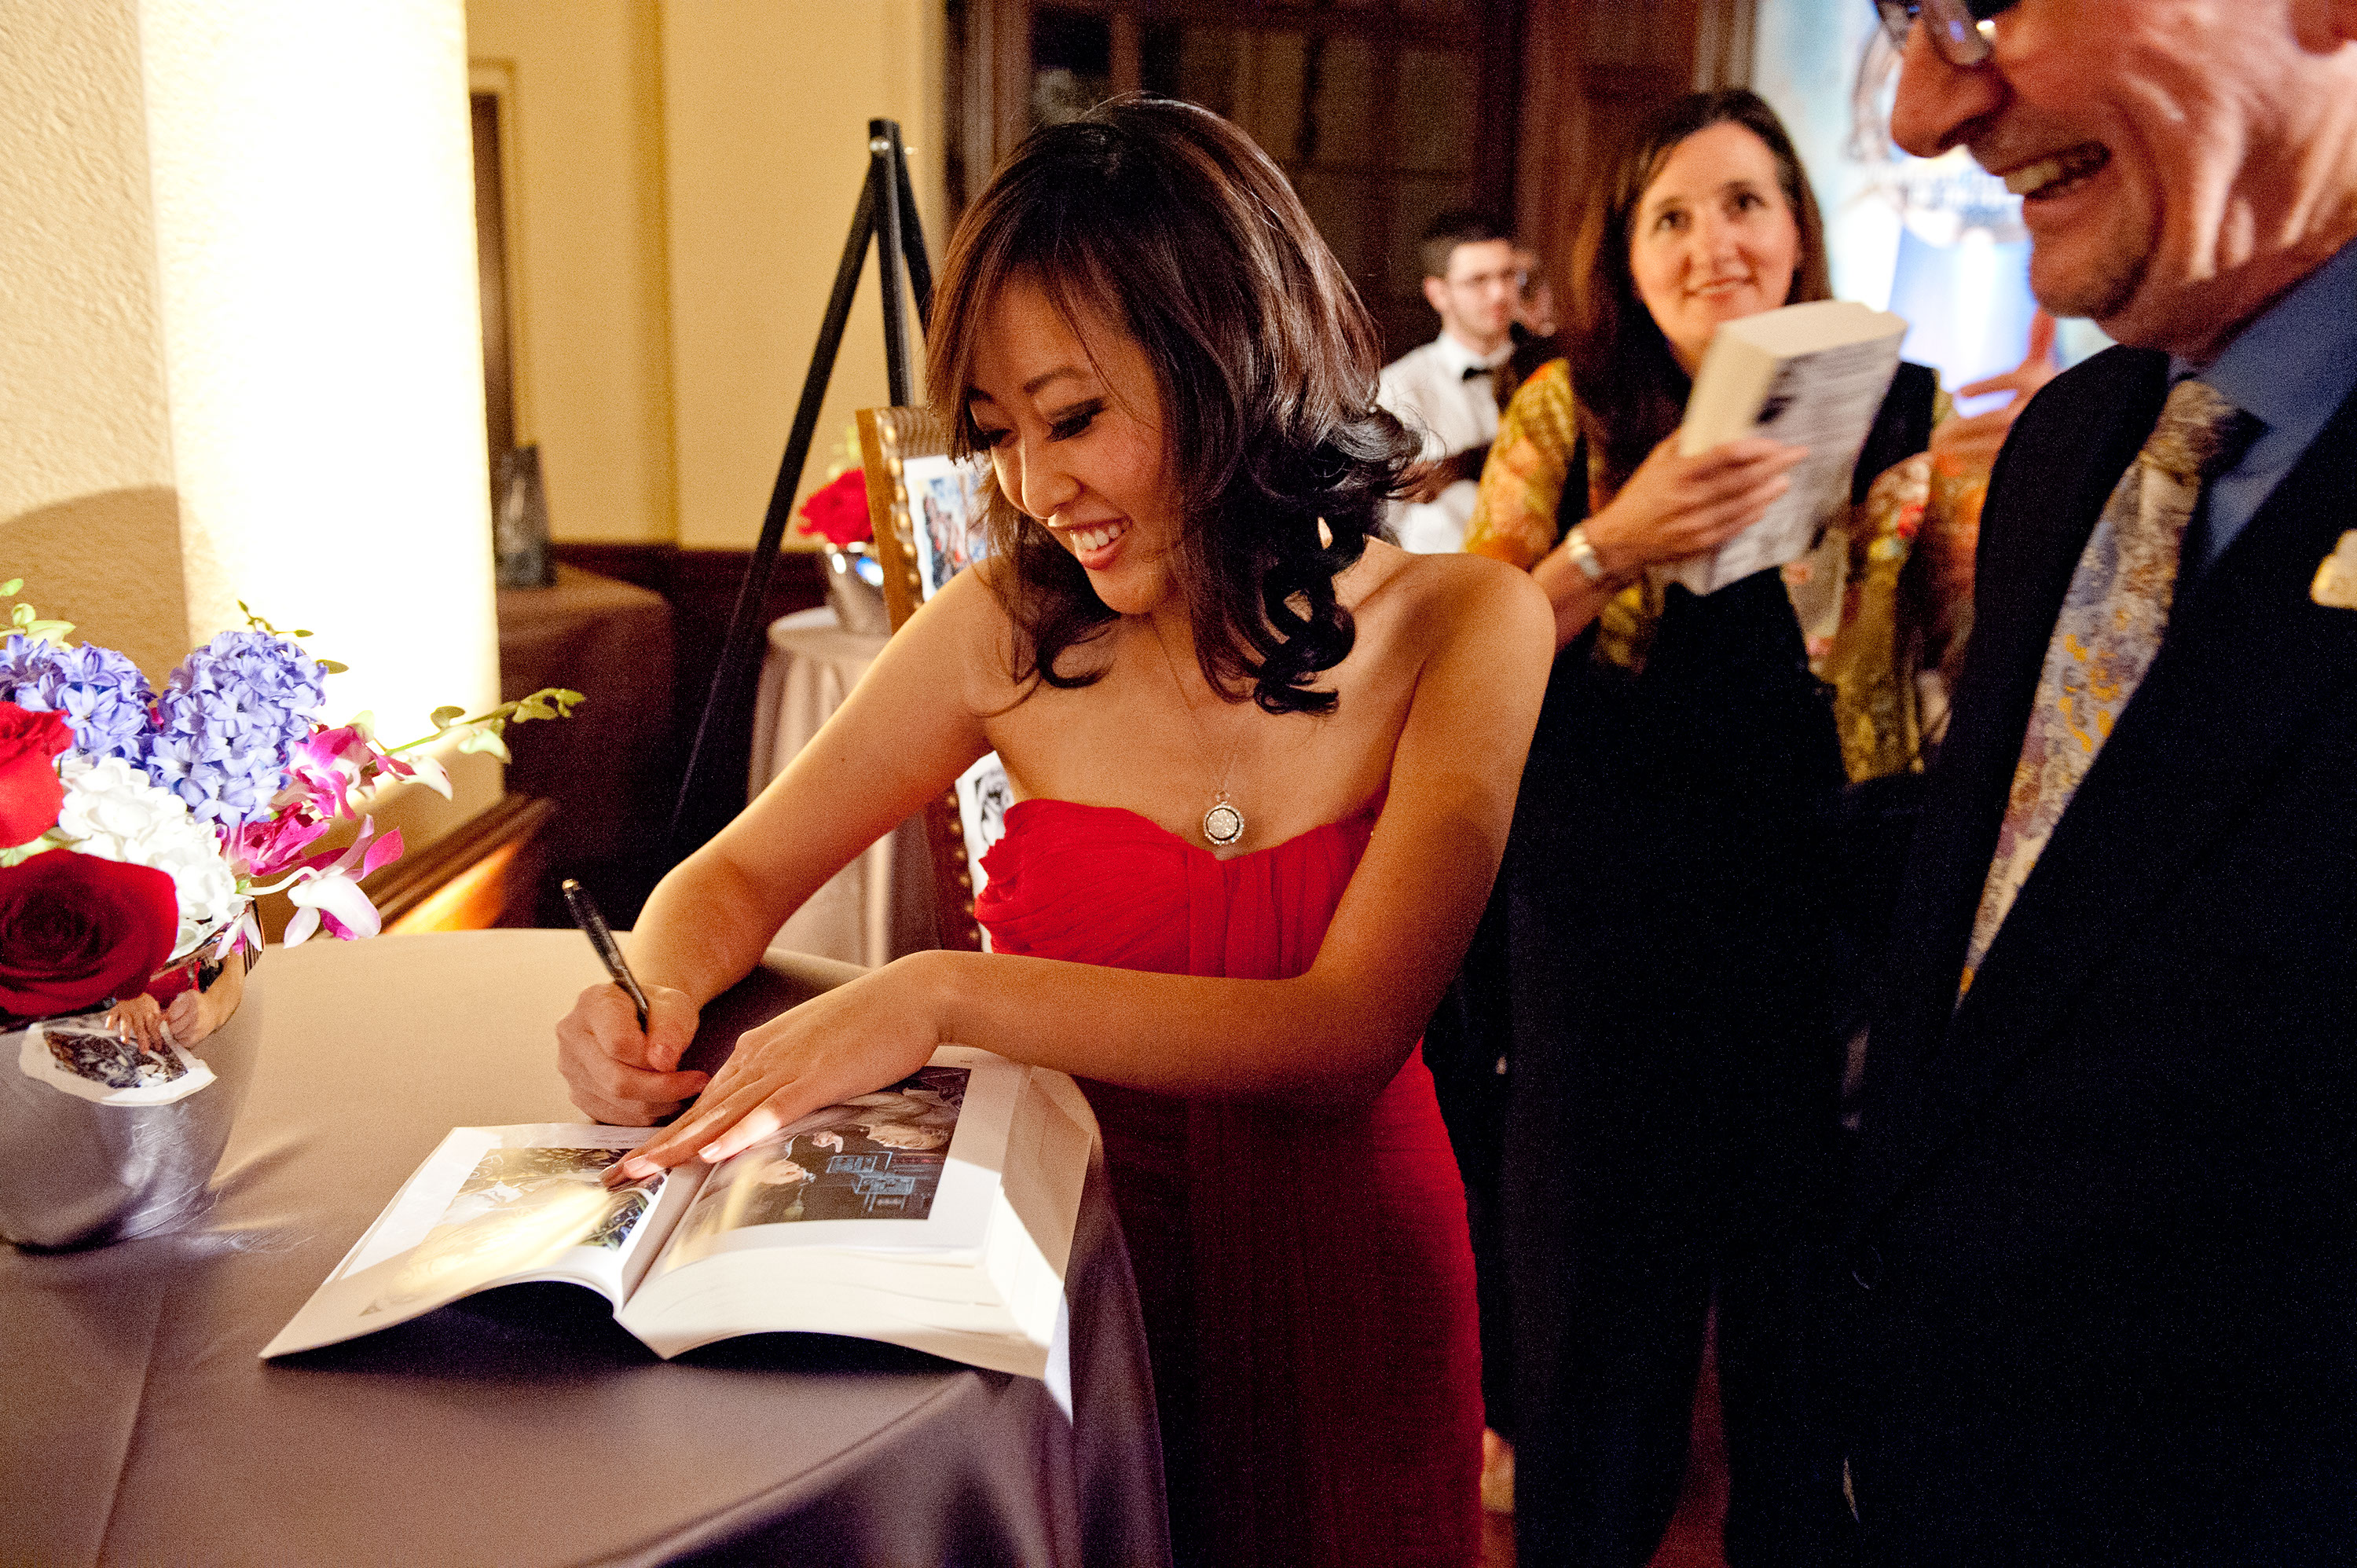 Kristie Kim signing books after the event